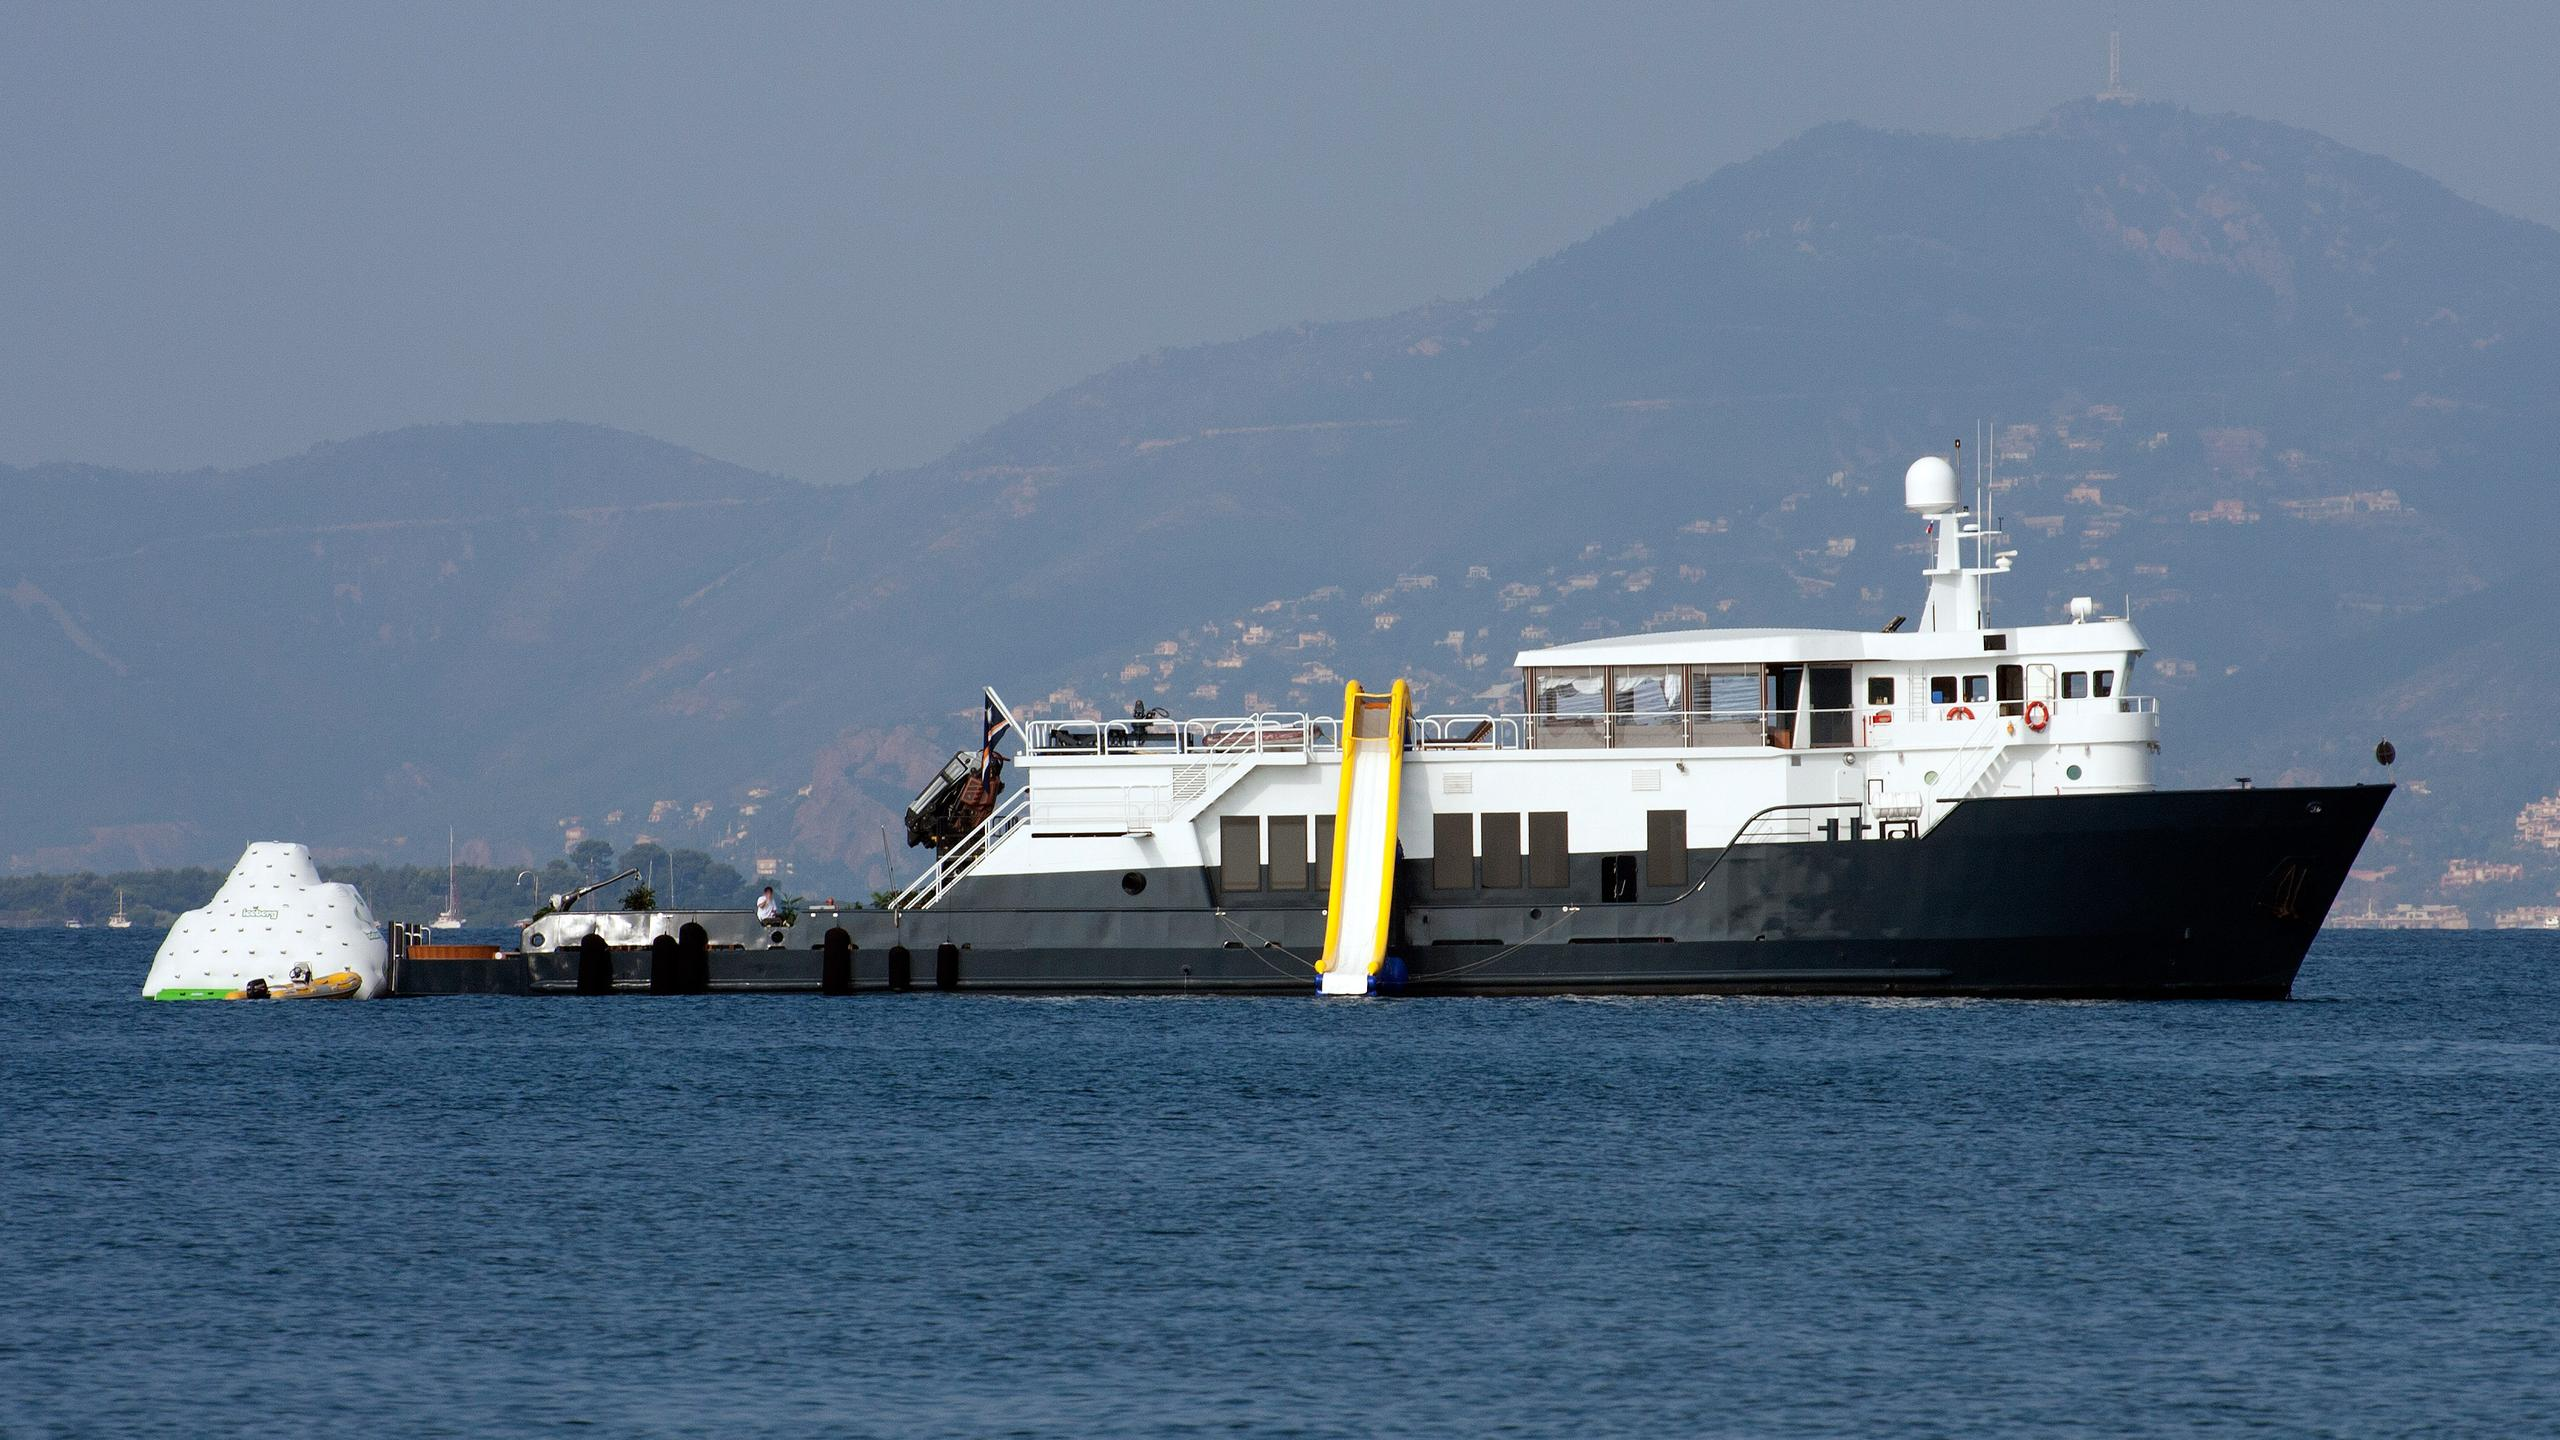 mystere-shadow-motor-yacht-candies-1981-48m-profile-anchored